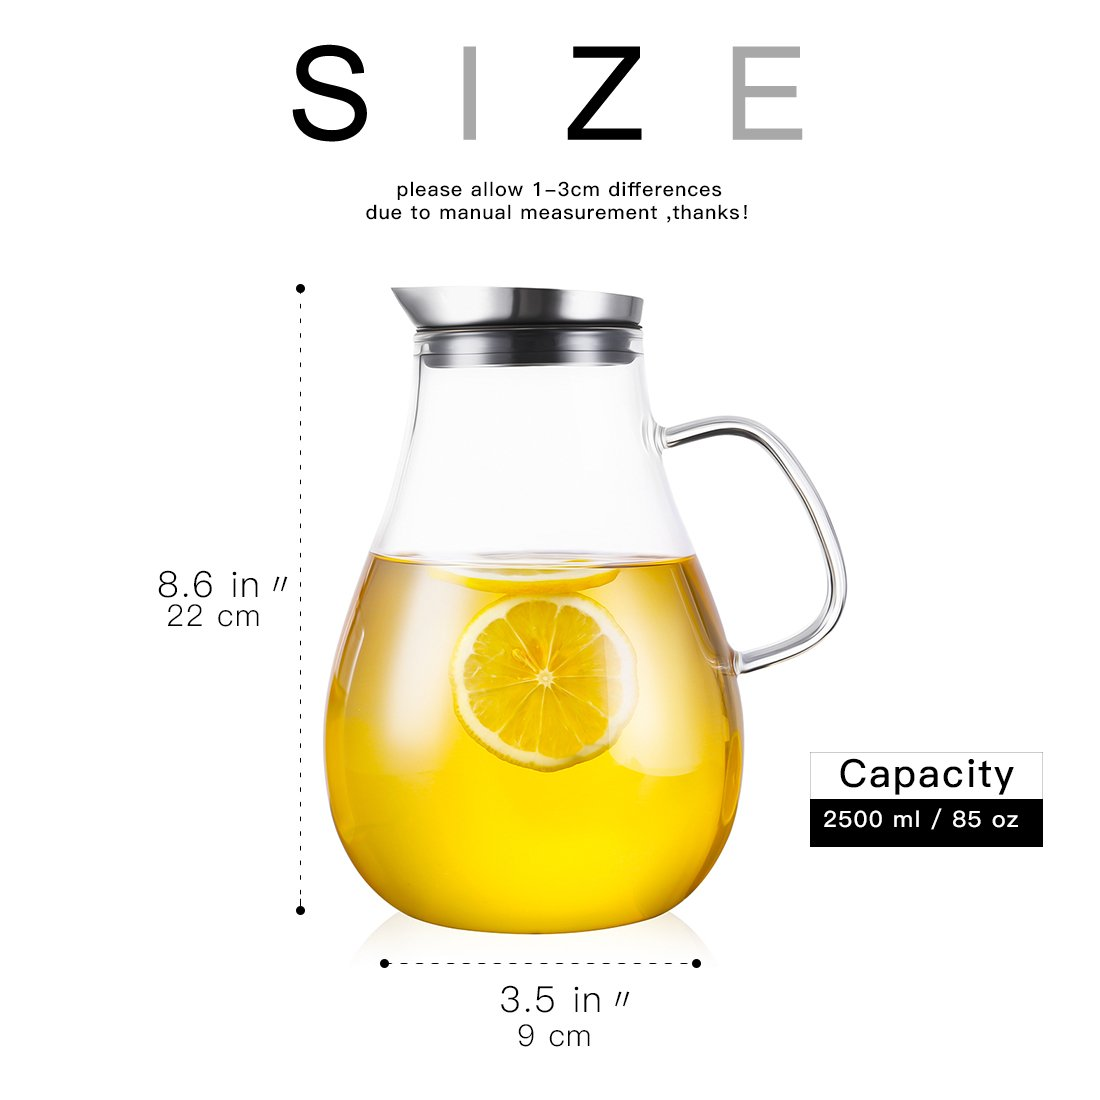 ONEISALL 85 Ounces Large Heat Resistant Glass Beverage Pitcher with Stainless Steel Lid, Borosilicate Water Carafe with Spout and Handle, Perfect for Homemade Juice & Iced Tea by Weisier (Image #4)